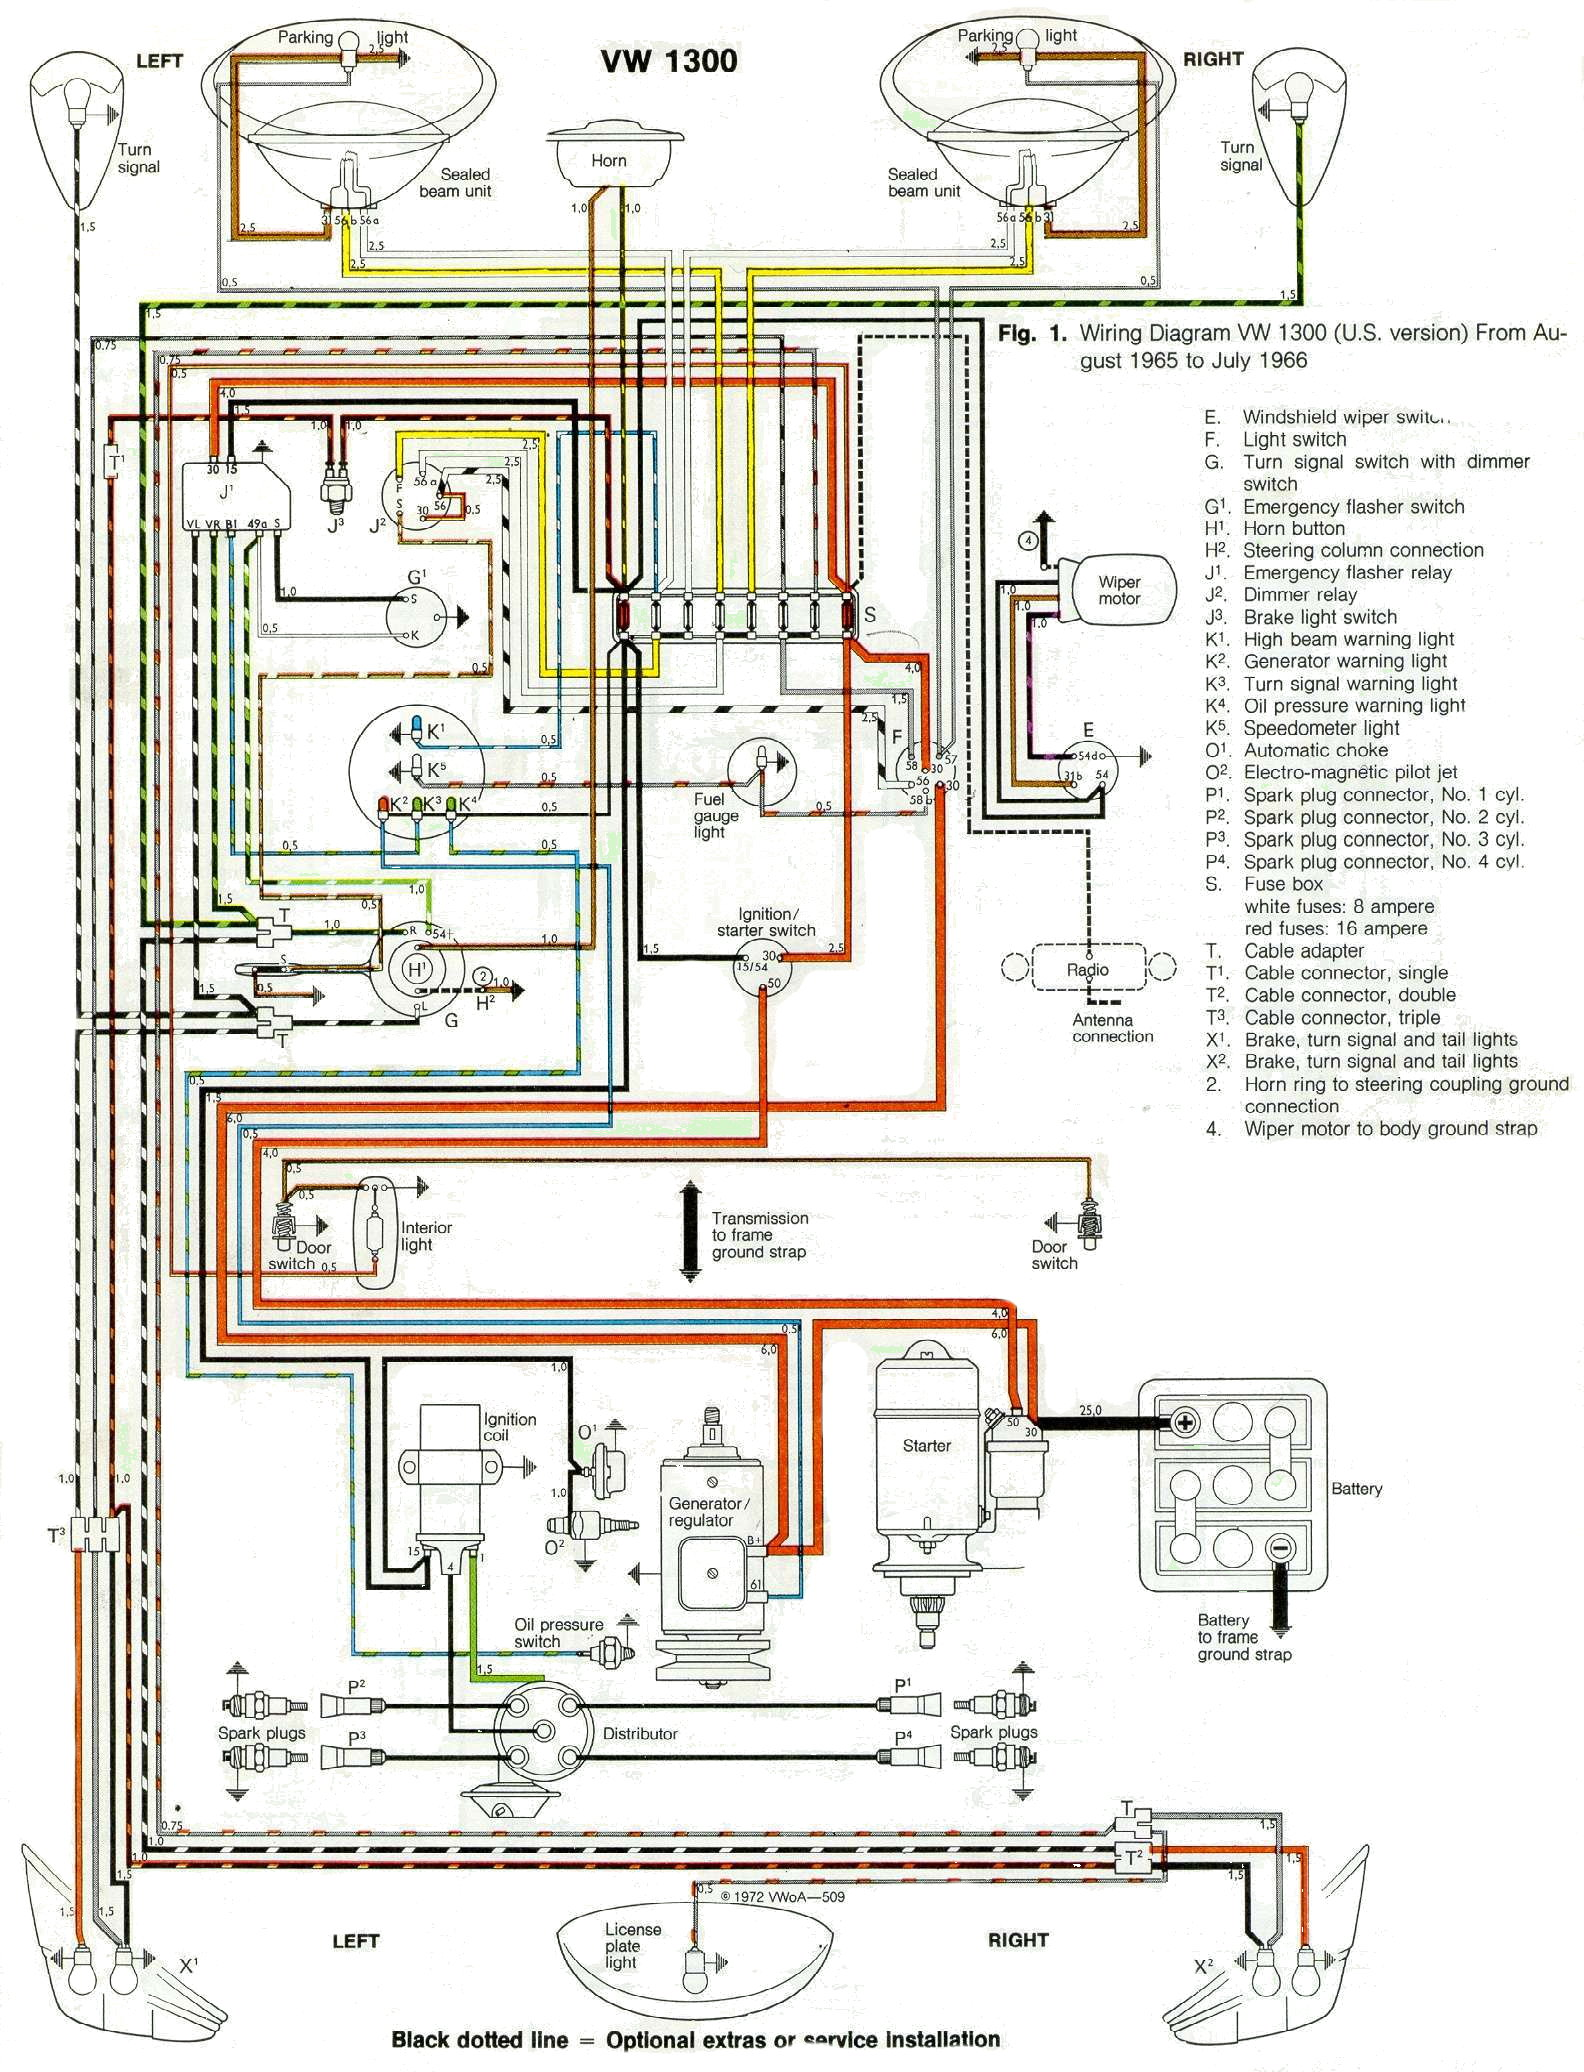 1966 Wiring vw wiring harness diagram cj7 wiring harness diagram \u2022 wiring 69 vw wiring harness at reclaimingppi.co